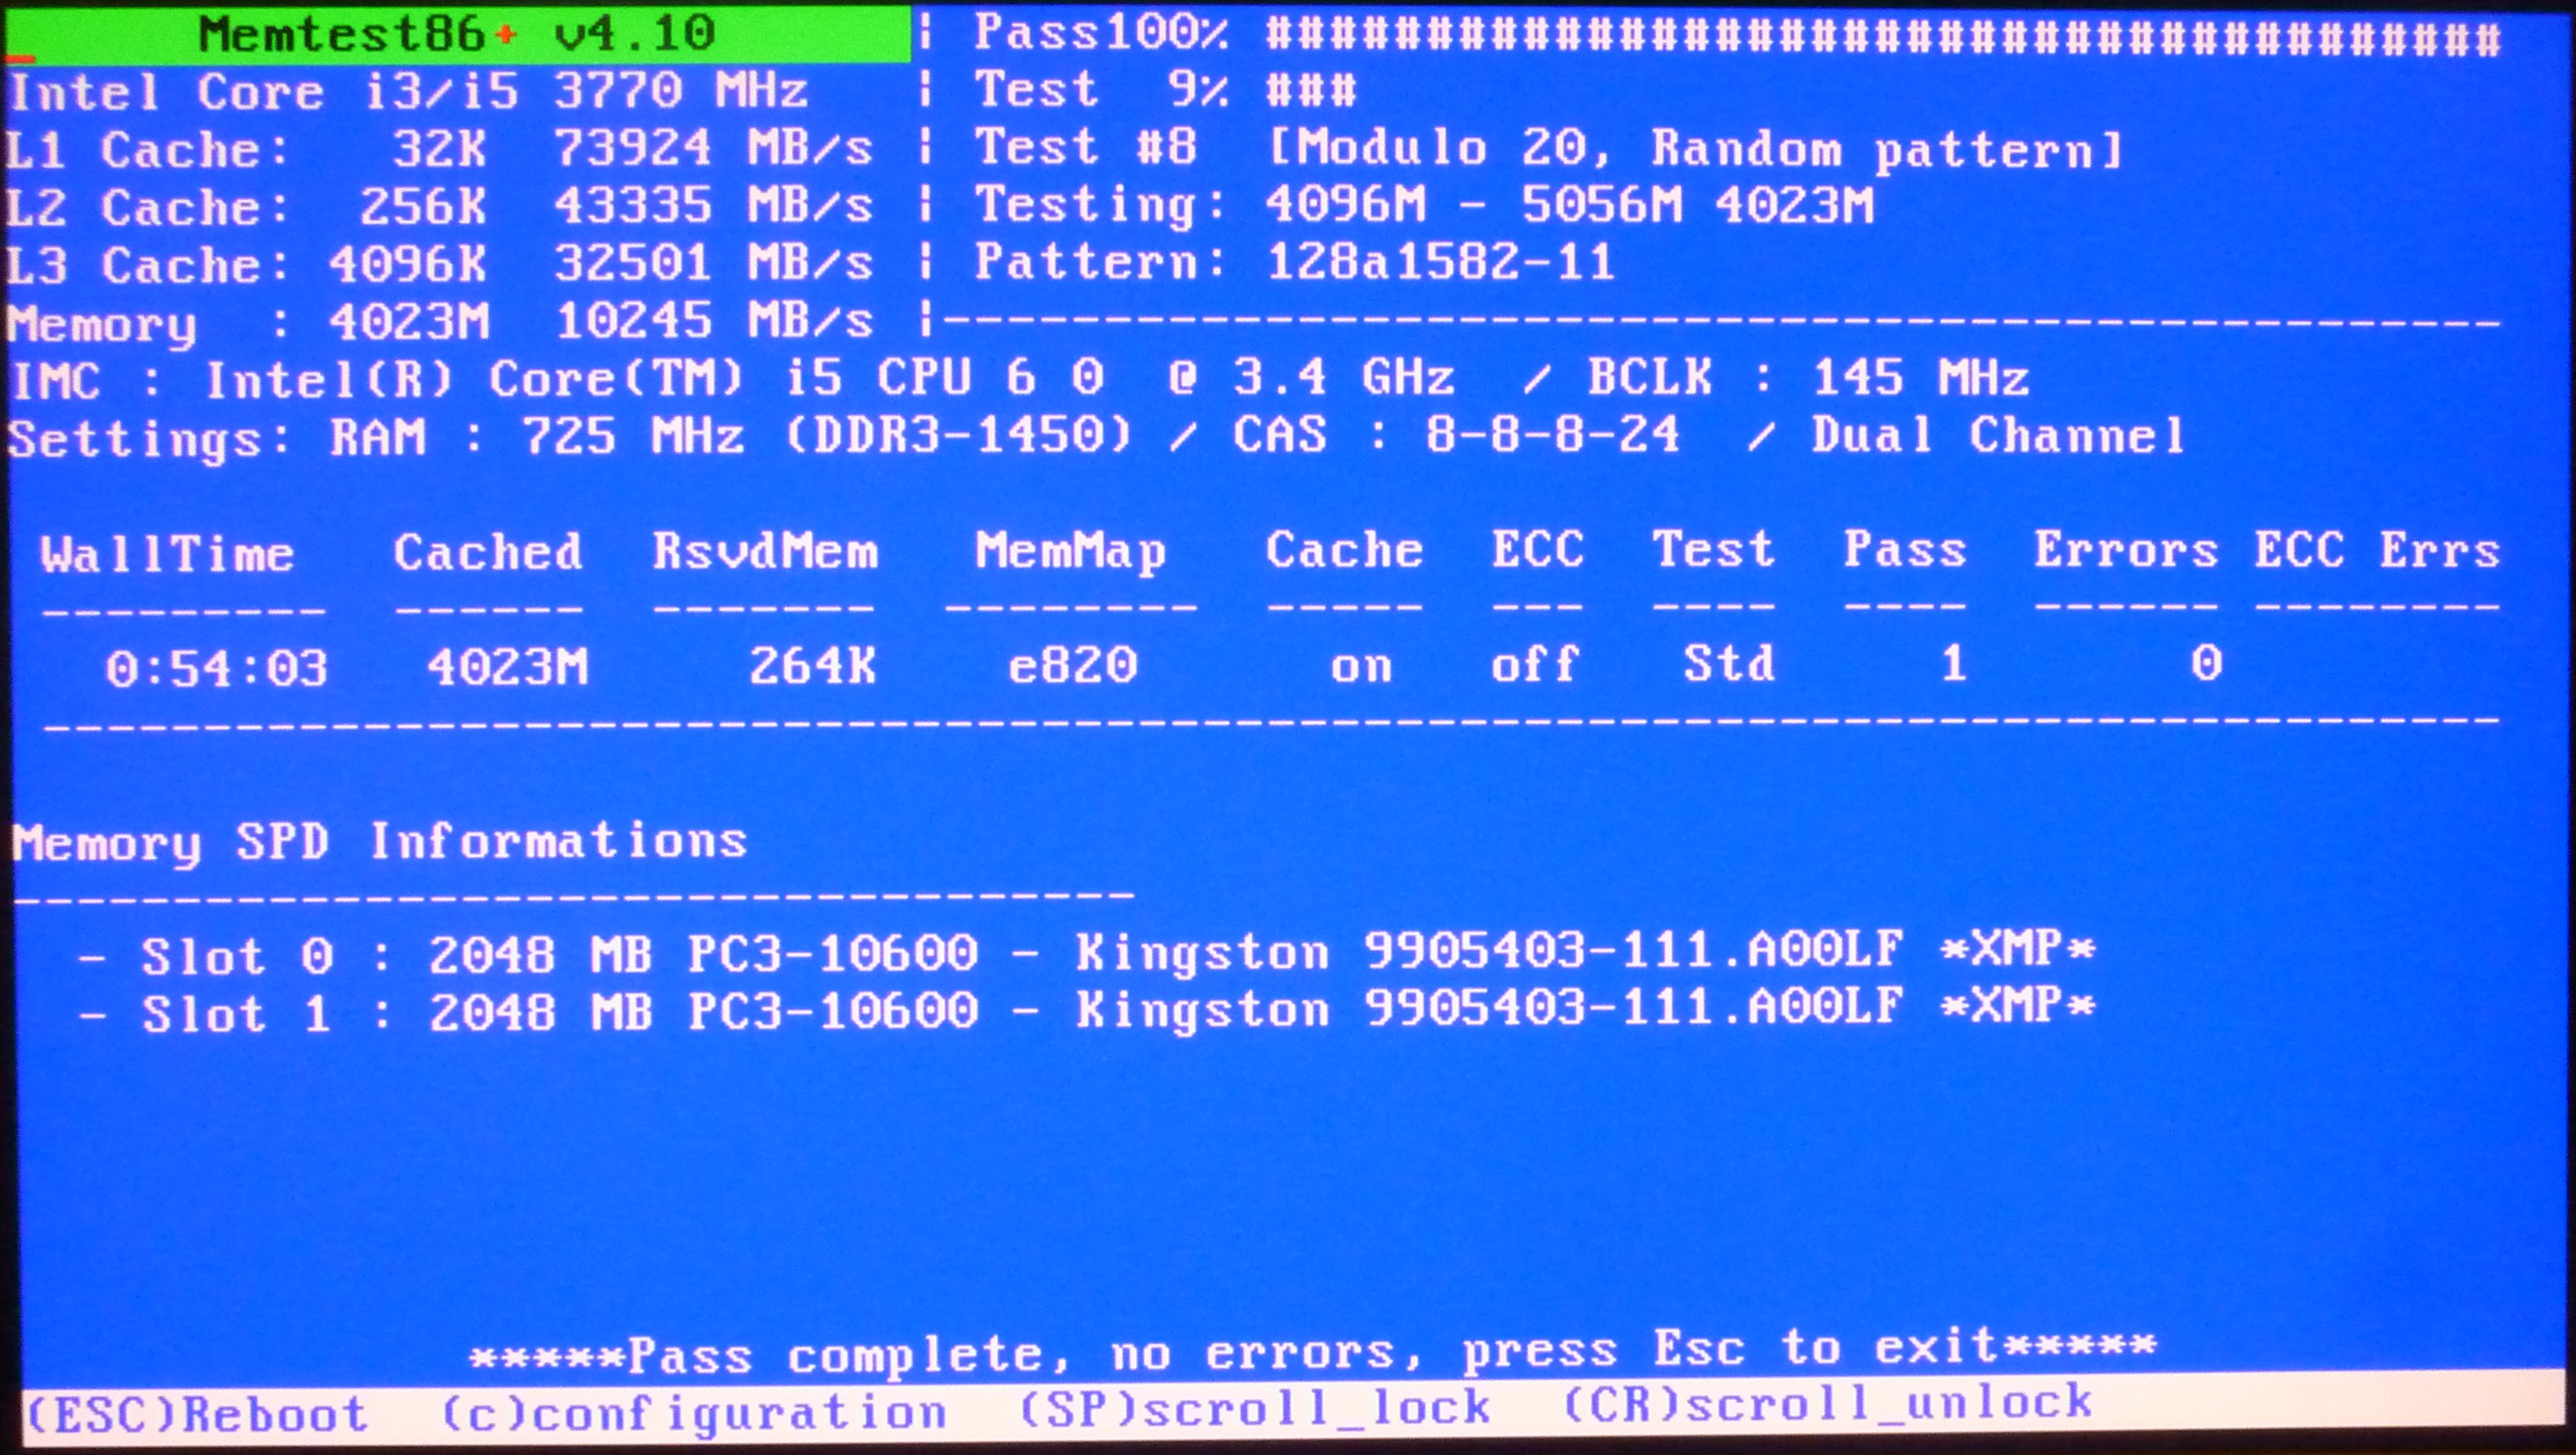 Memory Failure: Warnings, Troubleshooting, and Solutions